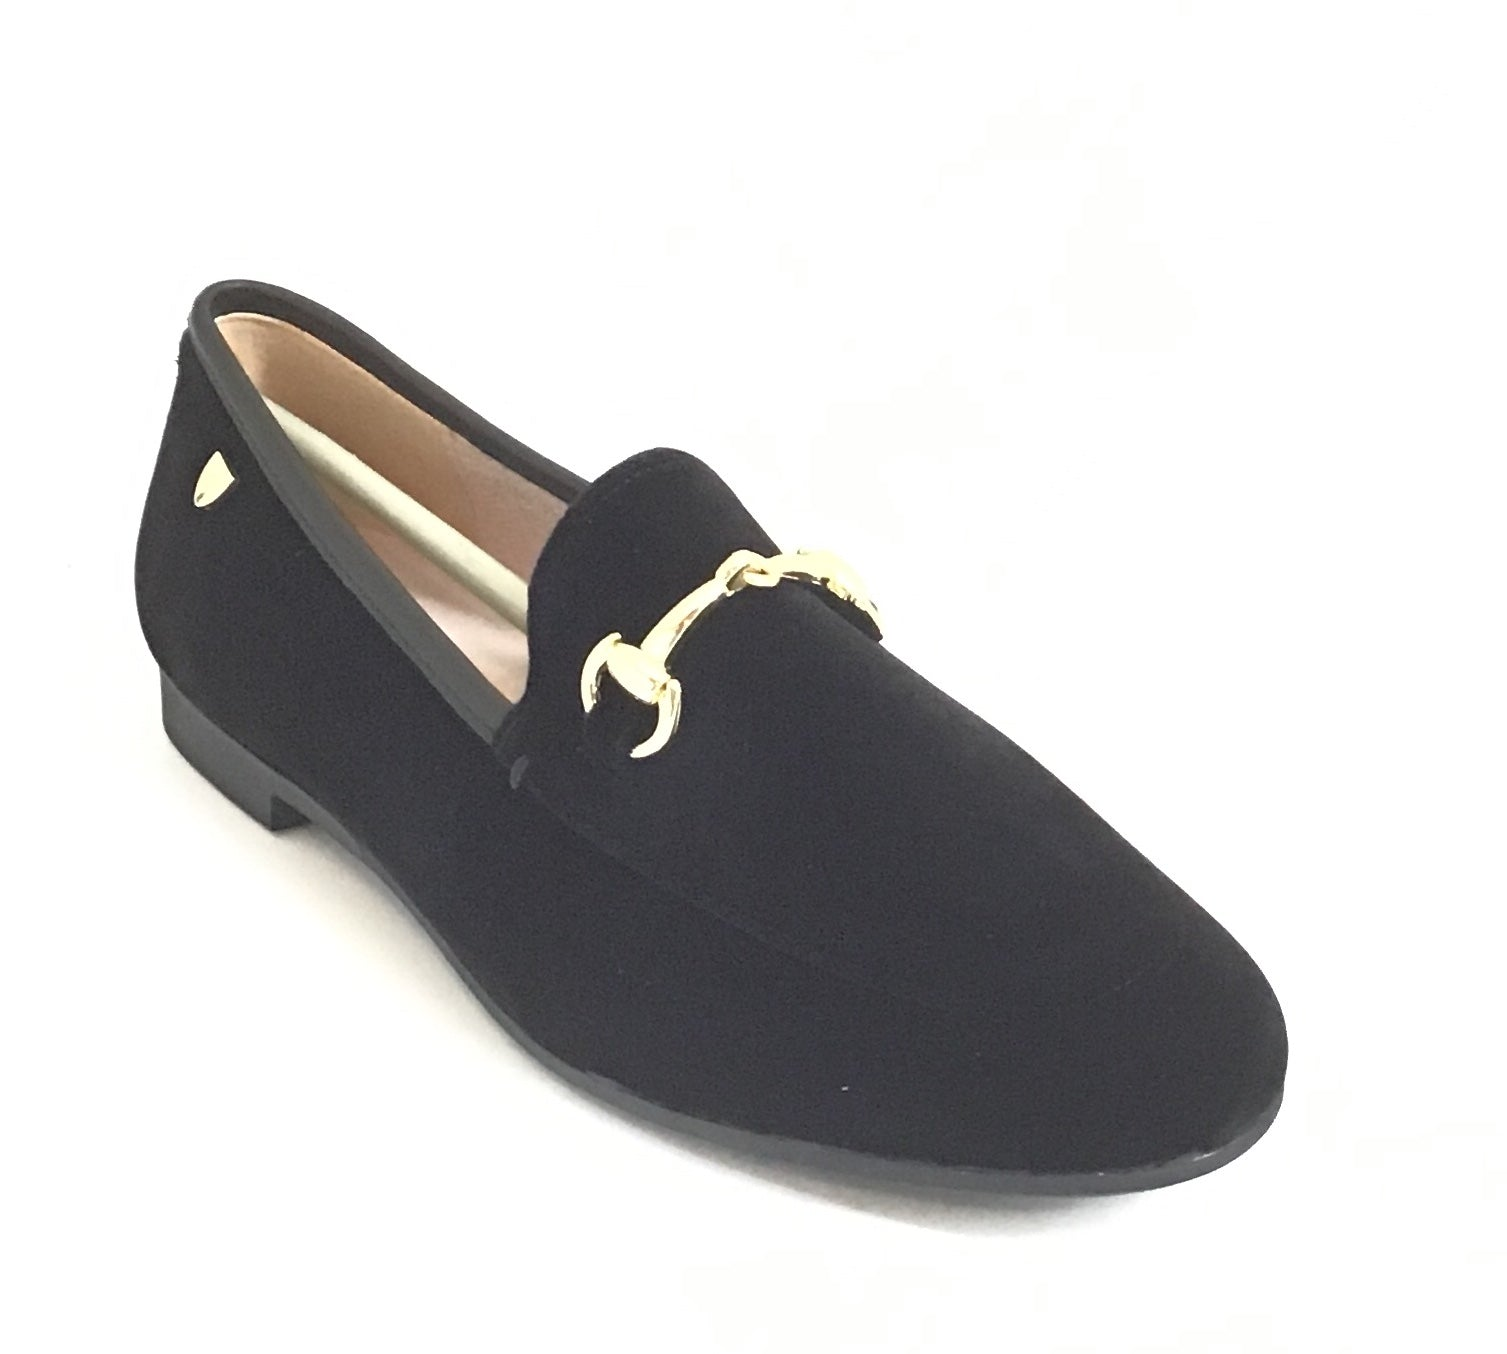 Venettini Black Suede Slip On With Chain